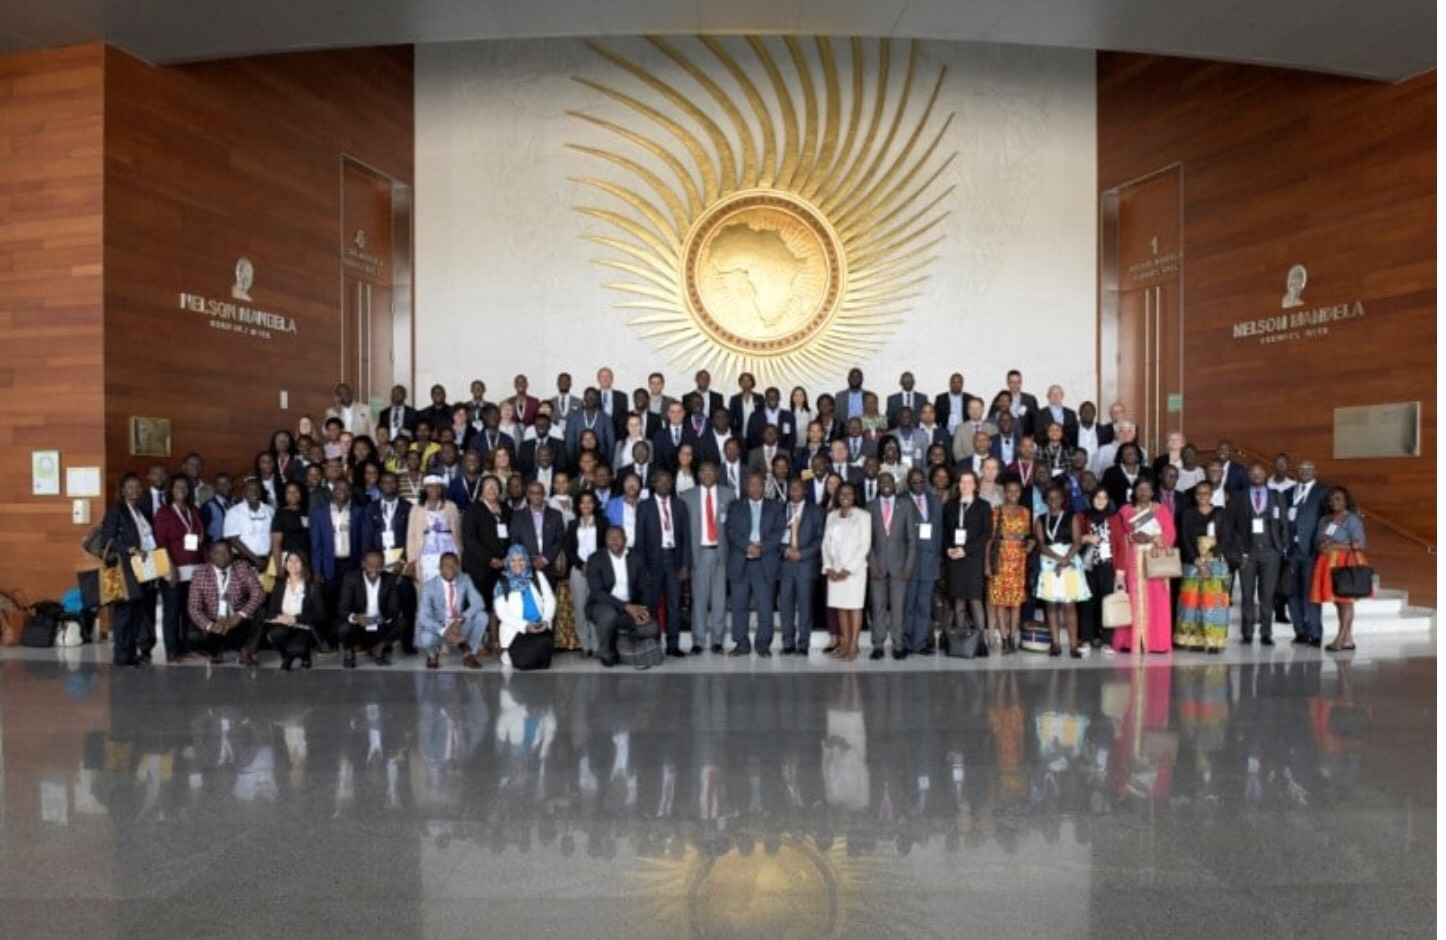 Input African Union Policy on Youth Entrepreneurship - Provide input to the African Union to support the reflection, design, and integration of youth-oriented policies at the core of the African Union. Supporitng the Union to consolidate and identify strategies and actions on youth entrepreneurship promotion in Africa. Concrete recommendations on this topic, as well as on its related issues of education, skills development, incubation, acceleration, start-up creation, entrepreneurship ecosystem, and the role of private sector in entrepreneurship promotion.